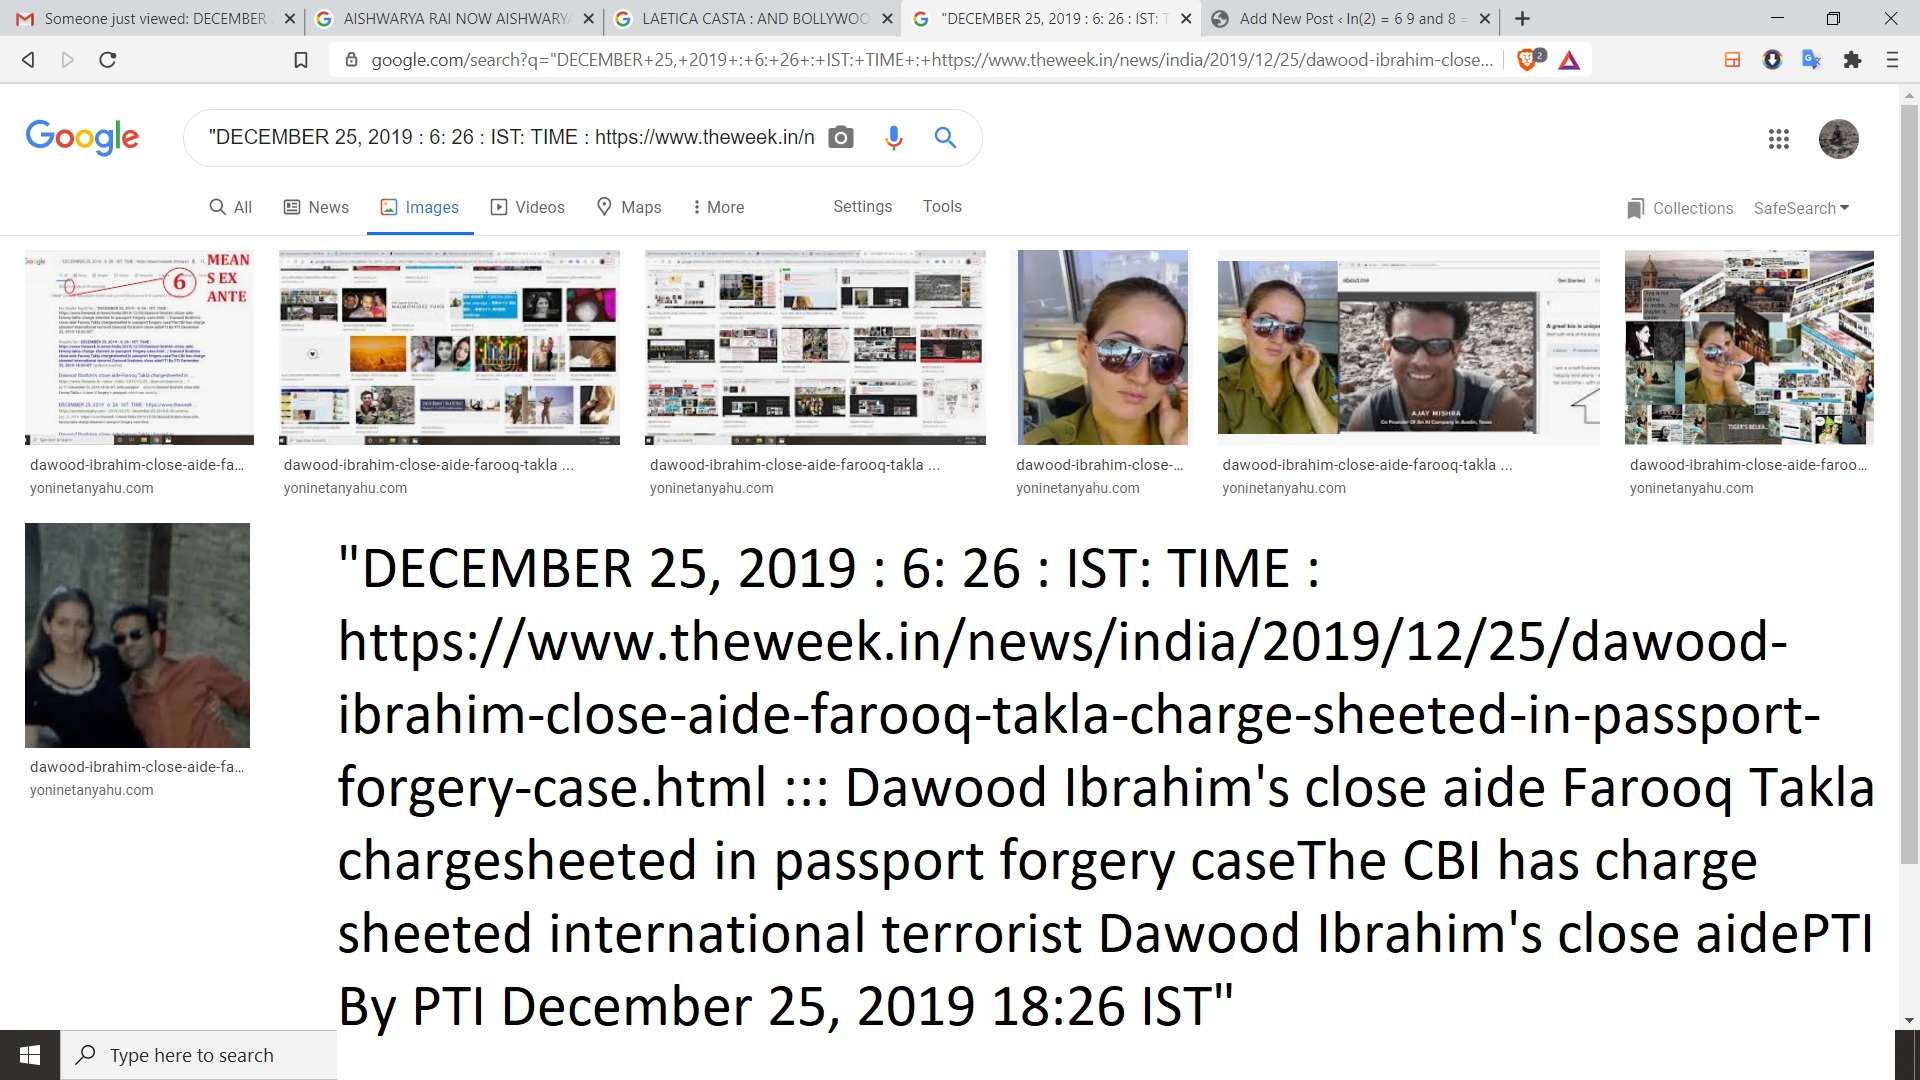 """""""DECEMBER 25, 2019 : 6: 26 : IST: TIME : https://www.theweek.in/news/india/2019/12/25/dawood-ibrahim-close-aide-farooq-takla-charge-sheeted-in-passport-forgery-case.html ::: Dawood Ibrahim's close aide Farooq Takla chargesheeted in passport forgery caseThe CBI has charge sheeted international terrorist Dawood Ibrahim's close aidePTI By PTI December 25, 2019 18:26 IST"""""""